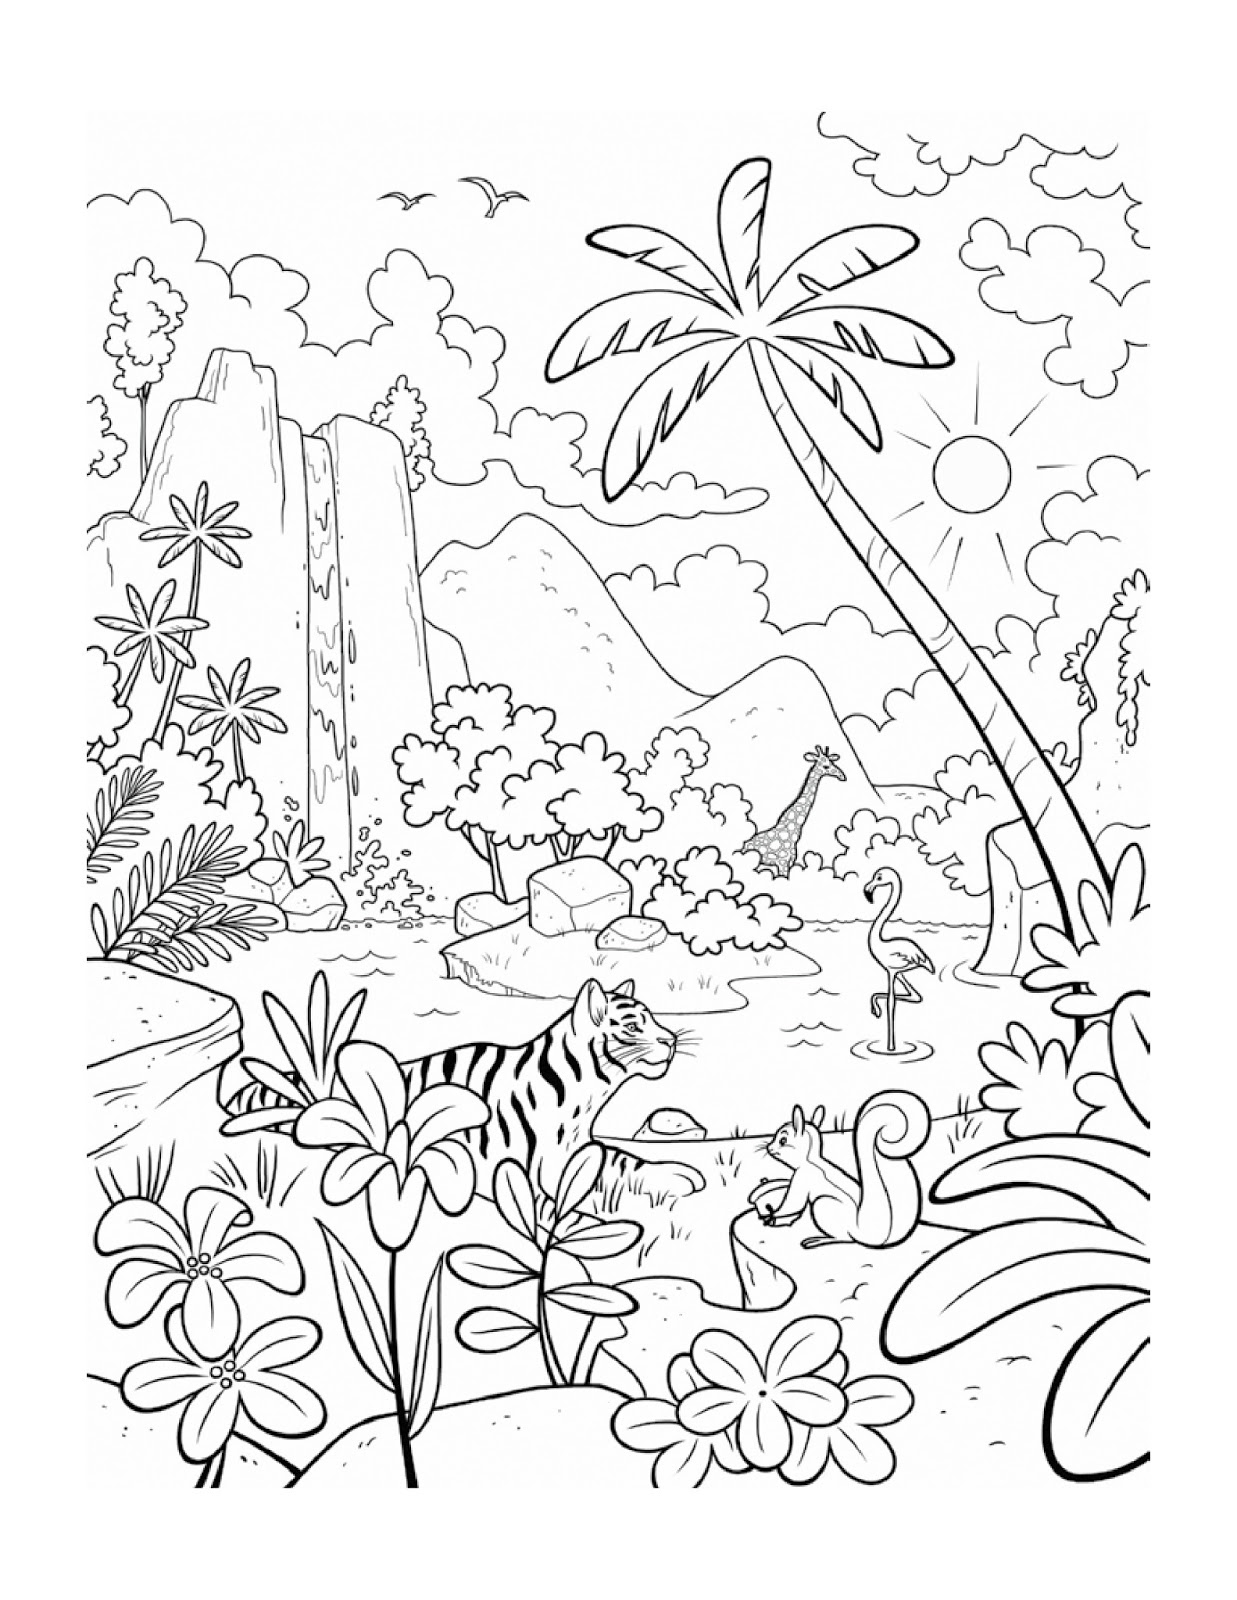 Best Coloring Page For Kids Drawing Coloring Painting